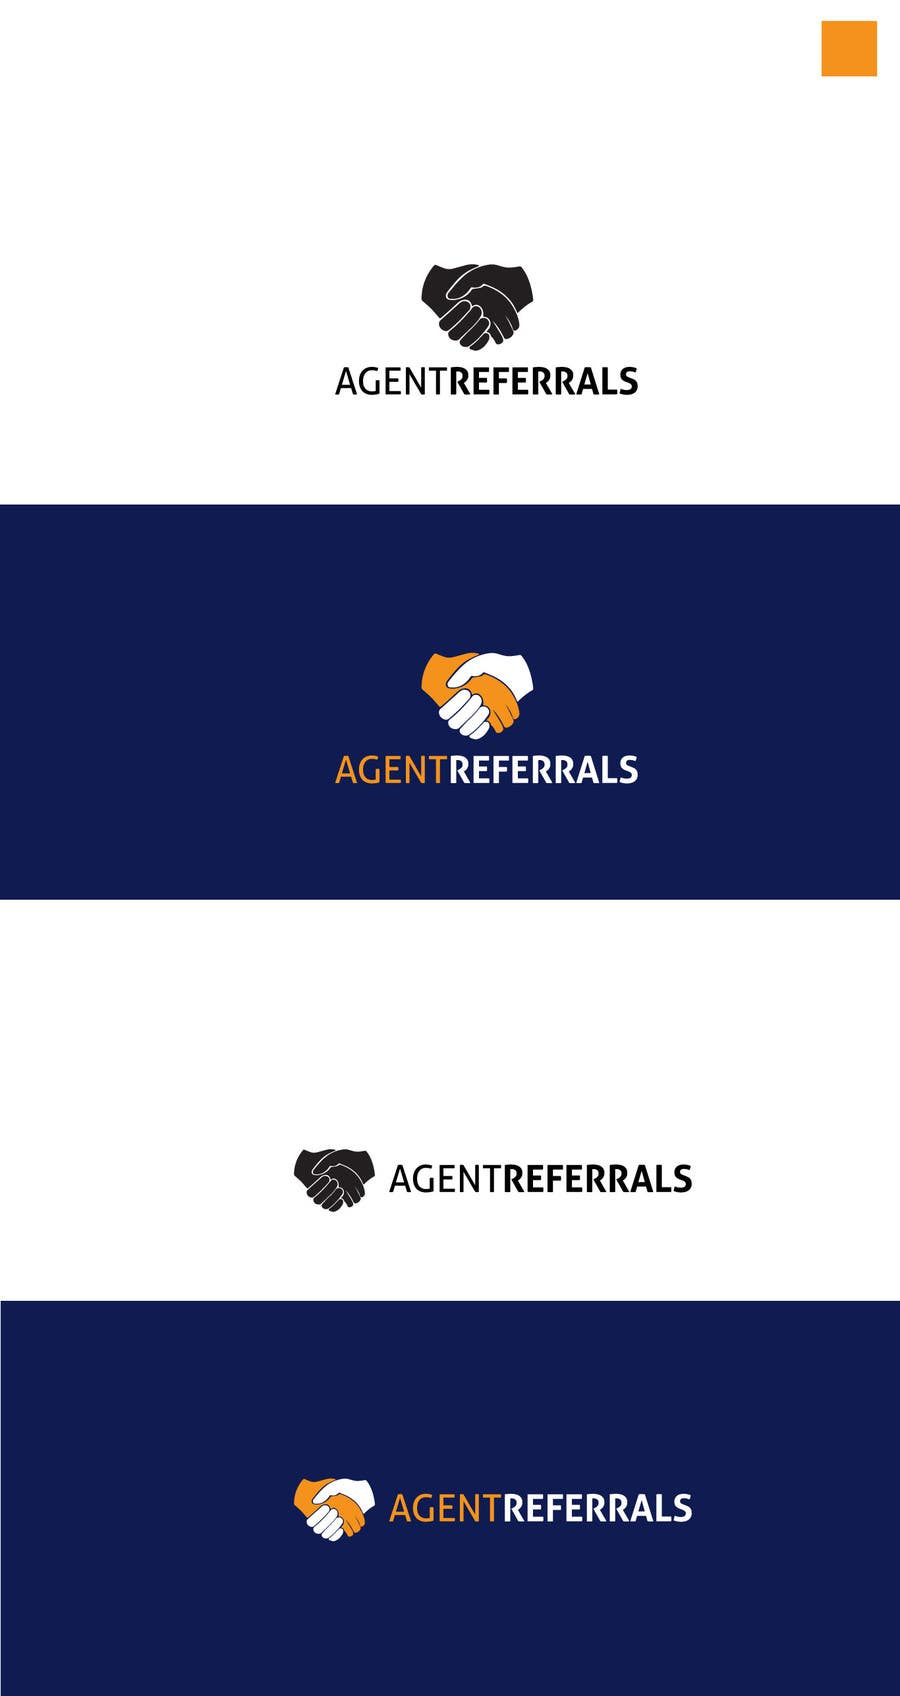 Contest Entry #8 for Design a Logo for my referral website.